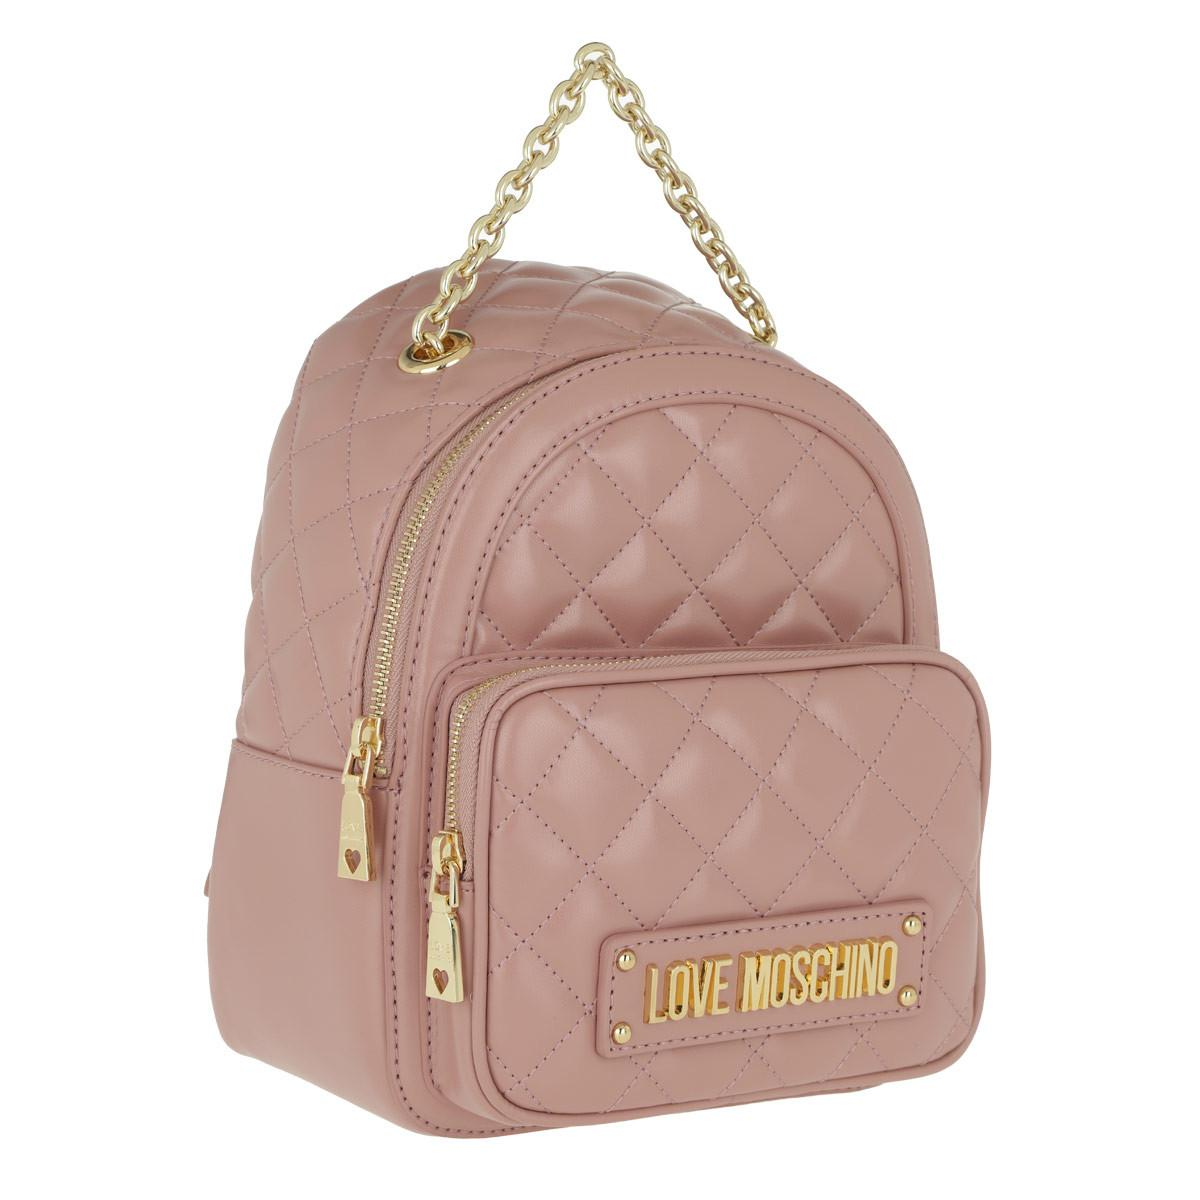 0eaf2f0bb731 Love Moschino - Pink Quilted Nappa Pu Small Backpack Rosa - Lyst. View  fullscreen